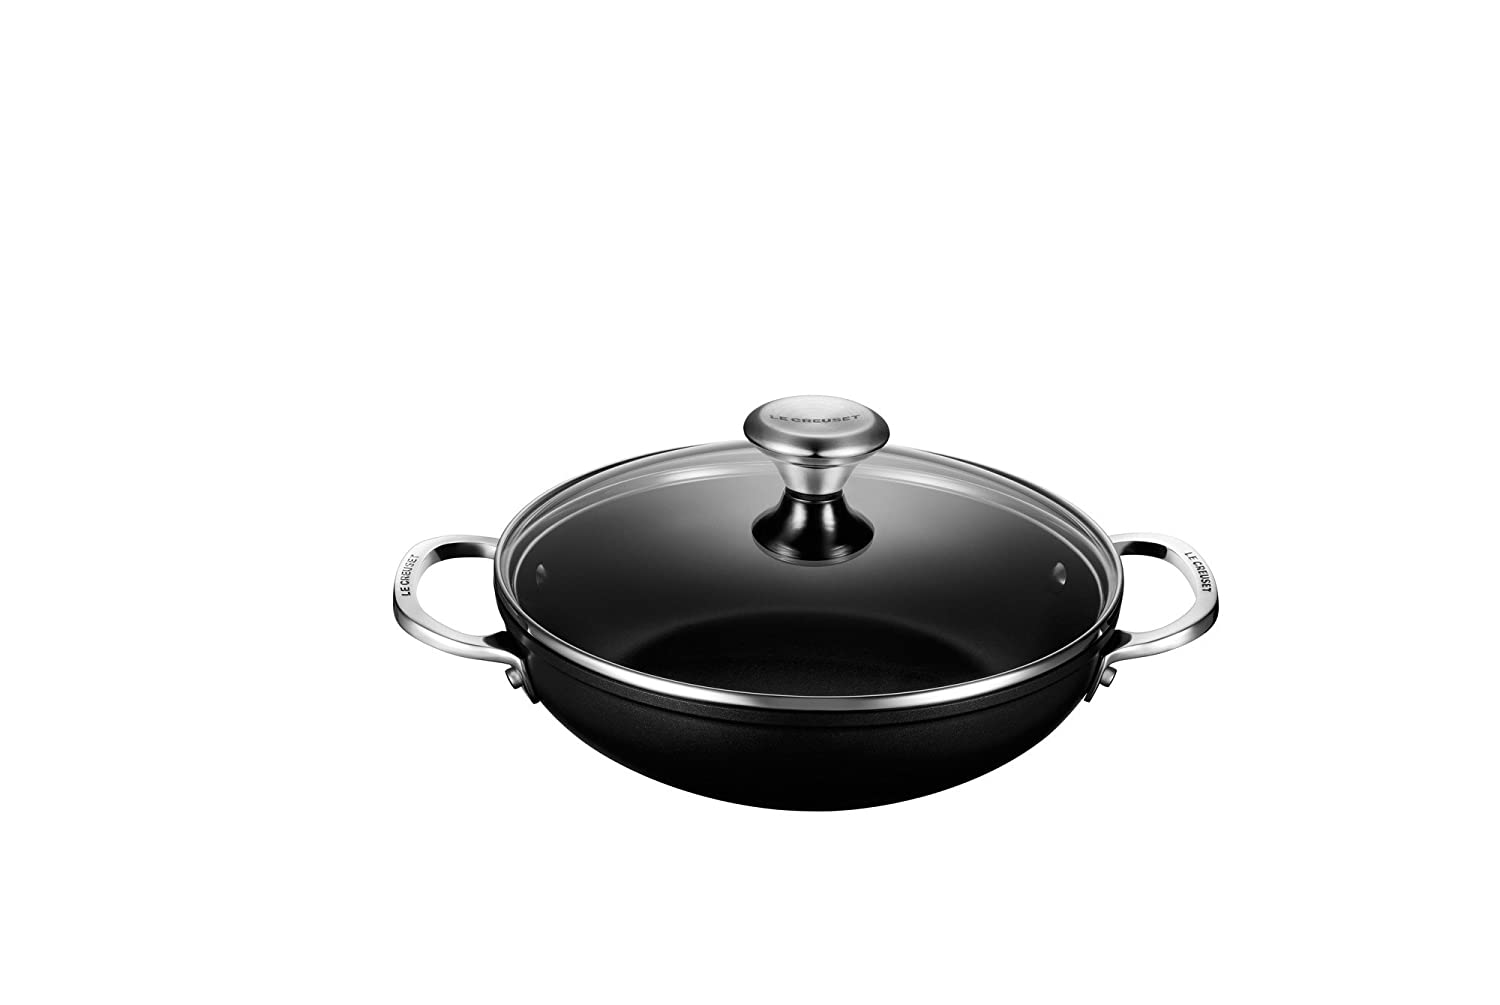 Le Creuset of America Toughened NonStick Shallow Casserole/Braiser with Lid, 2.5 quart